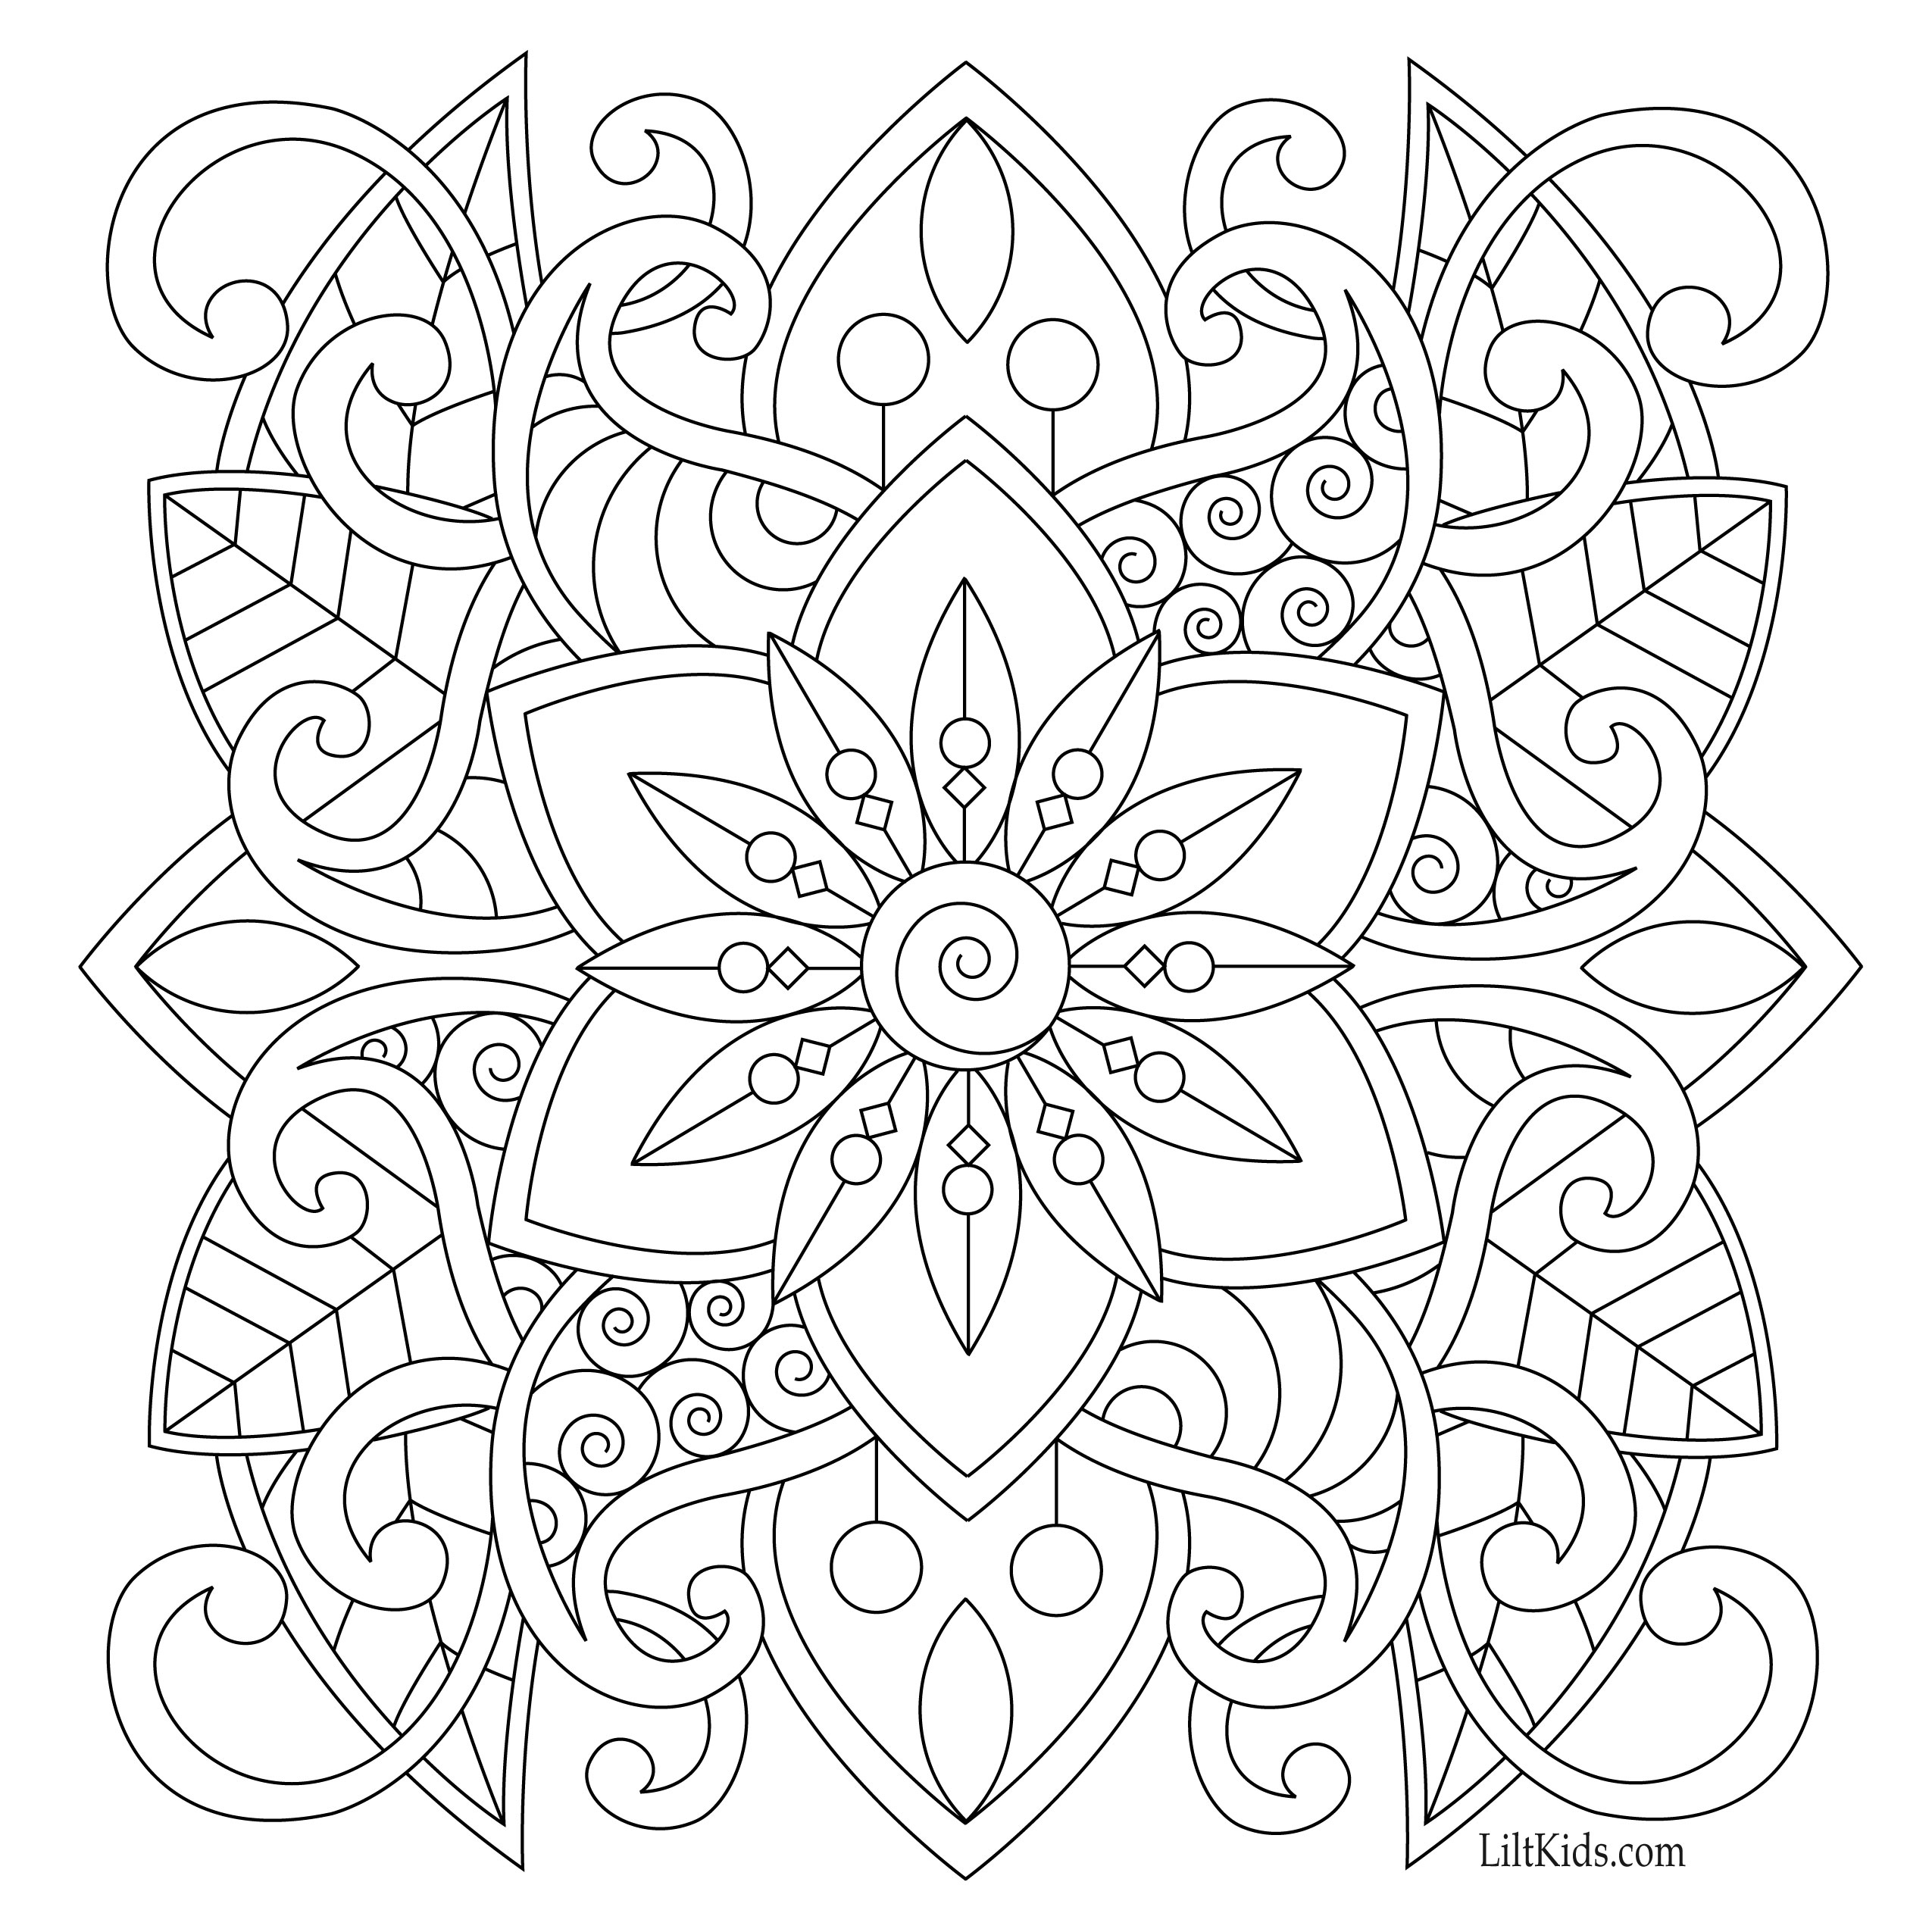 2550x2550 Free Easy Mandala For Beginners Adult Coloring Book Image From